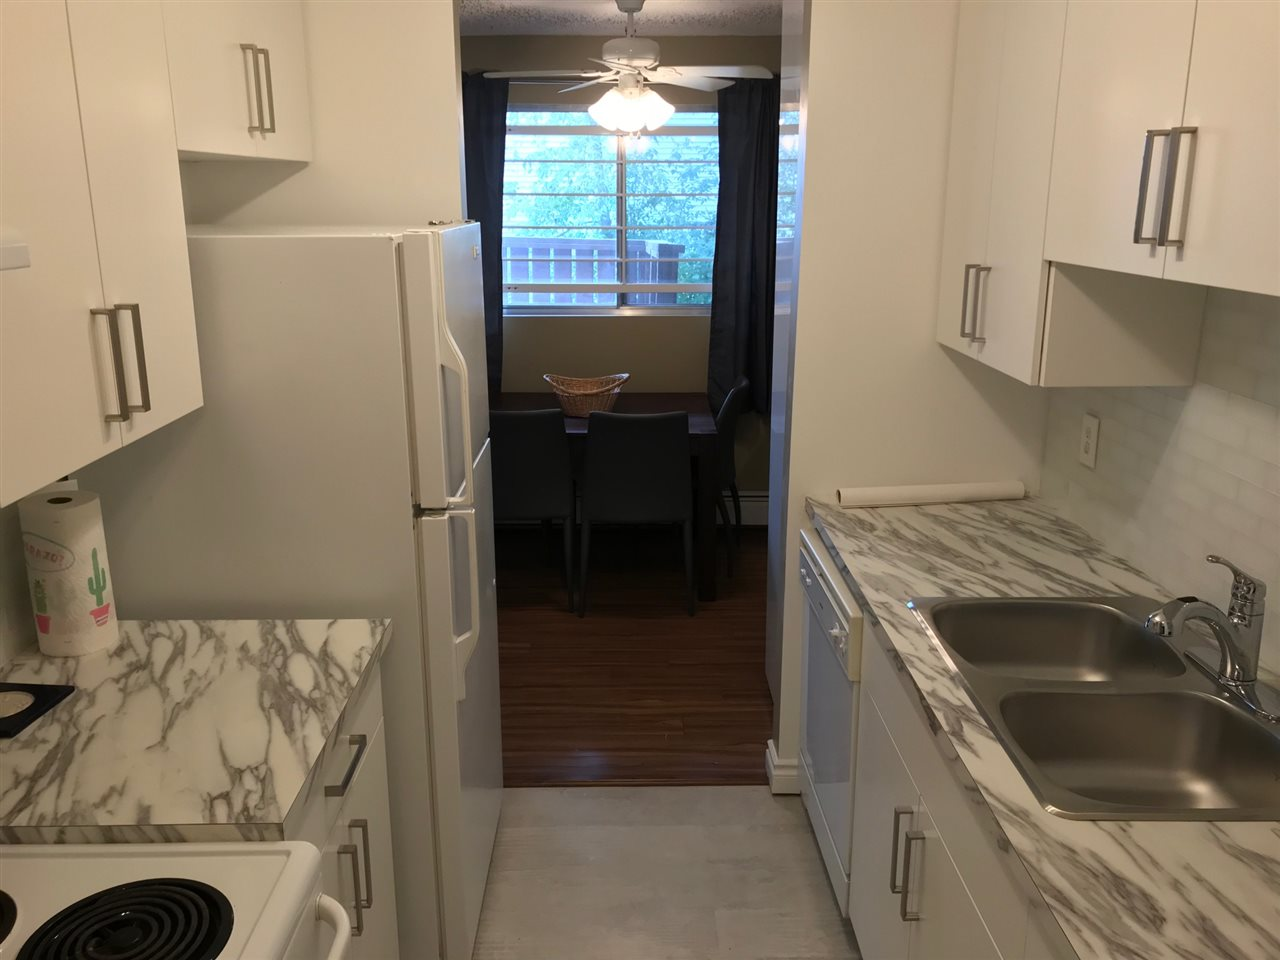 Nicely kept one bedroom suite in Queen Mary Park. This condo can be purchased fully furnished making it move in ready and perfect for those studying at Nait, Grant MacEwan or working downtown. Complete with a large south facing patio this condo has its own washer and dryer, so no more fiddling around with change or waiting for your neighbors to be done! And yes, the TV is also available!